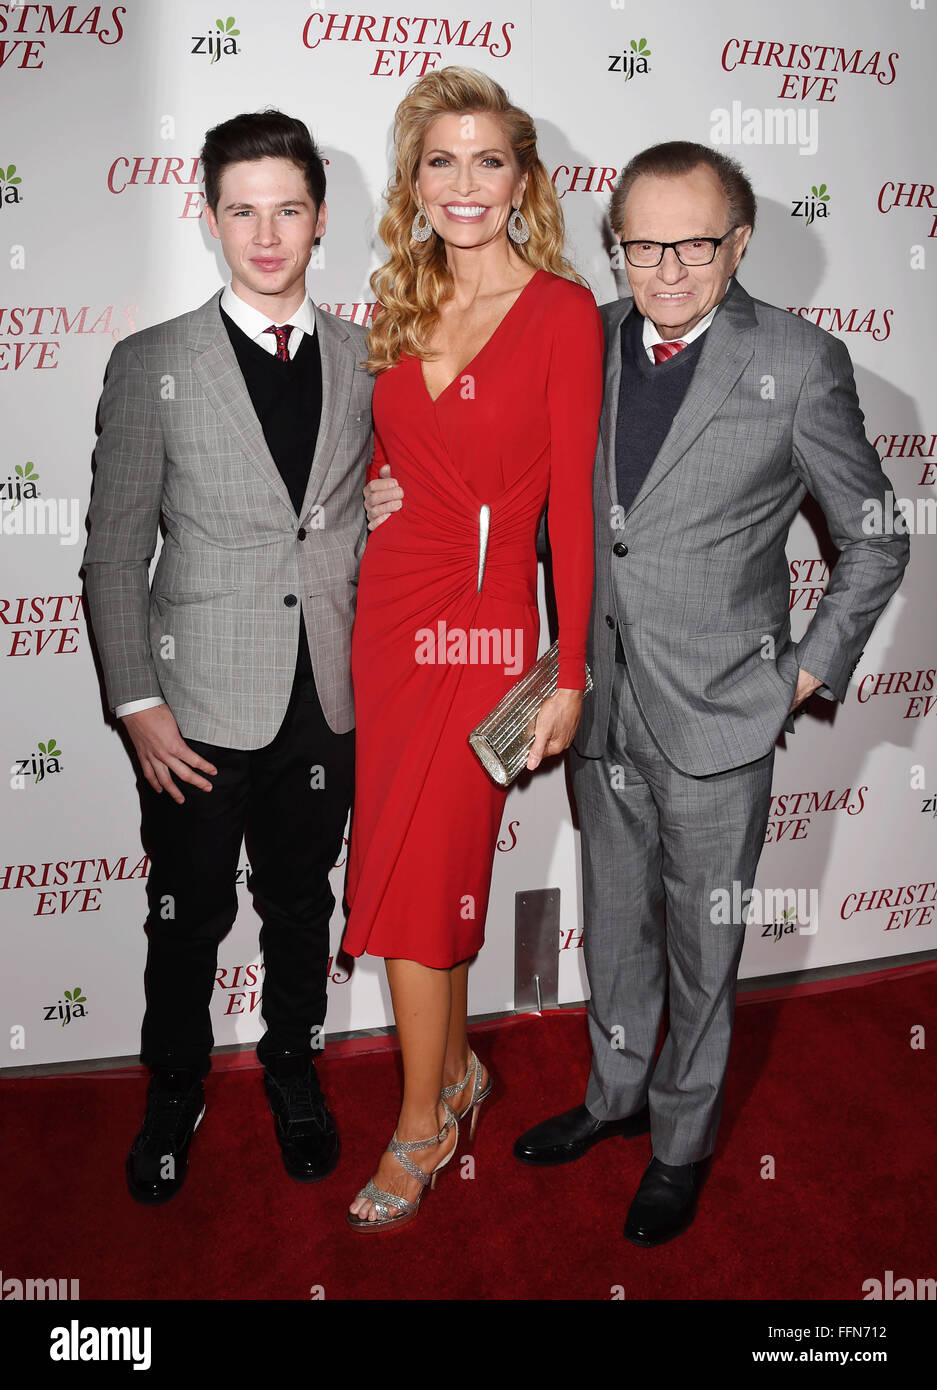 (L-R) Cannon King, producers/parents Shawn King and Larry King arrive at the premiere of Unstuck's 'Christmas - Stock Image